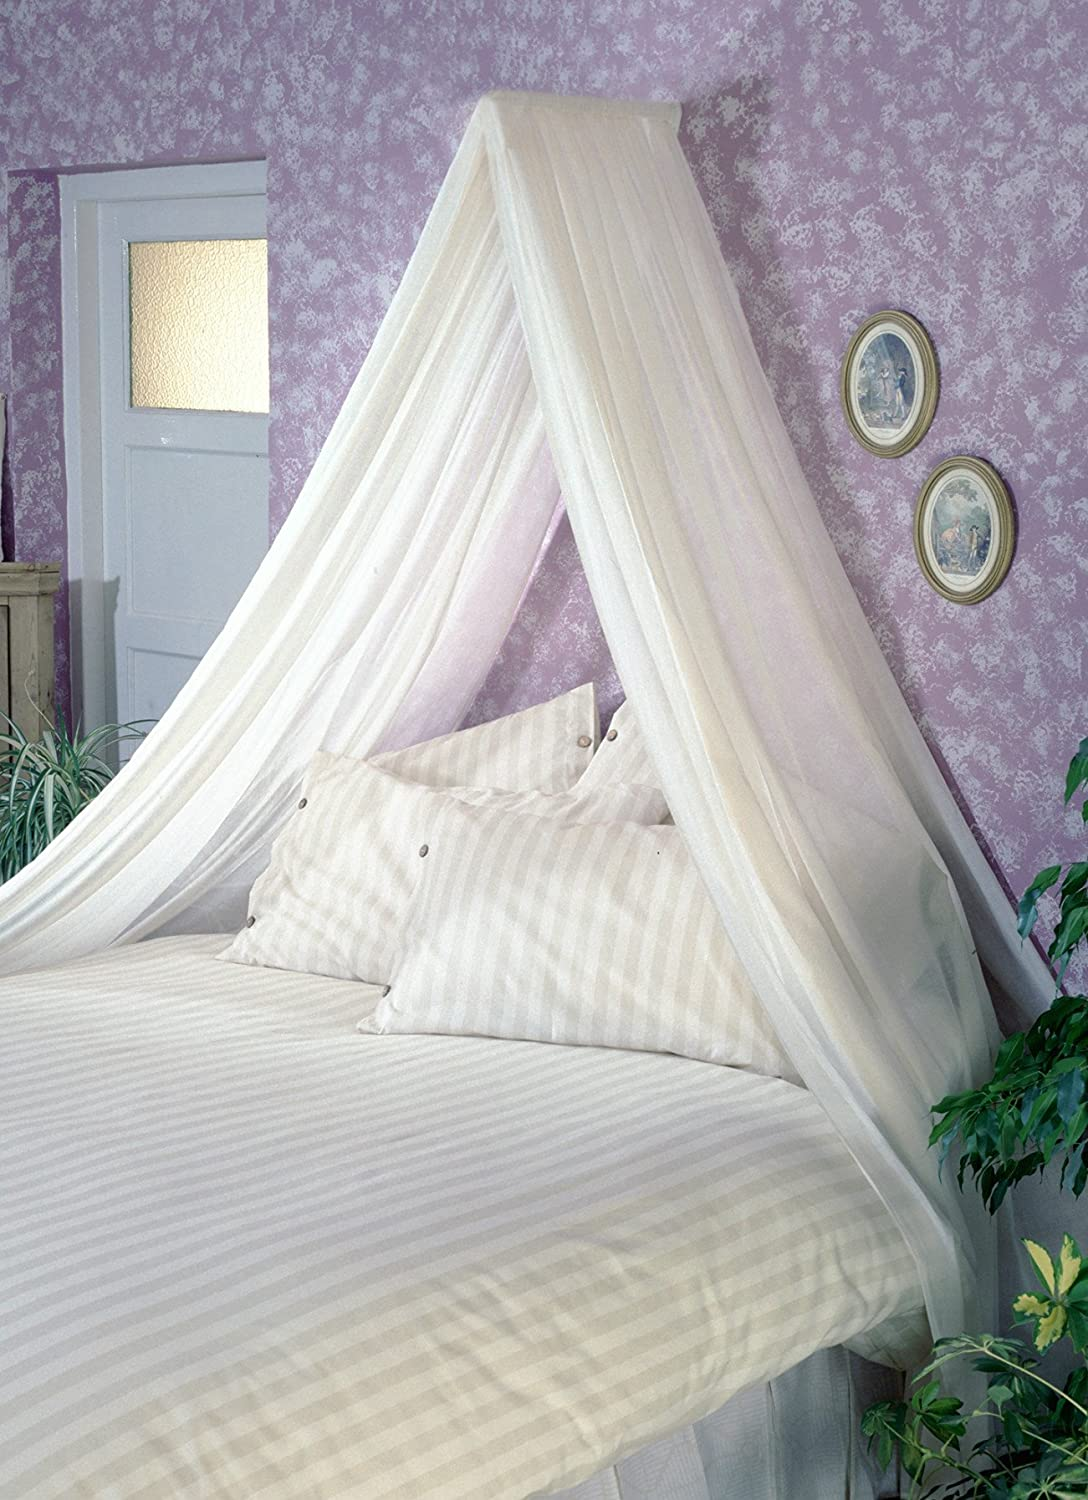 CREAM BED CANOPY SET Soft Sheer Pale Cream VOILE Rod Fixing Kit COMPLETE EASY FIX Amazoncouk Kitchen Home